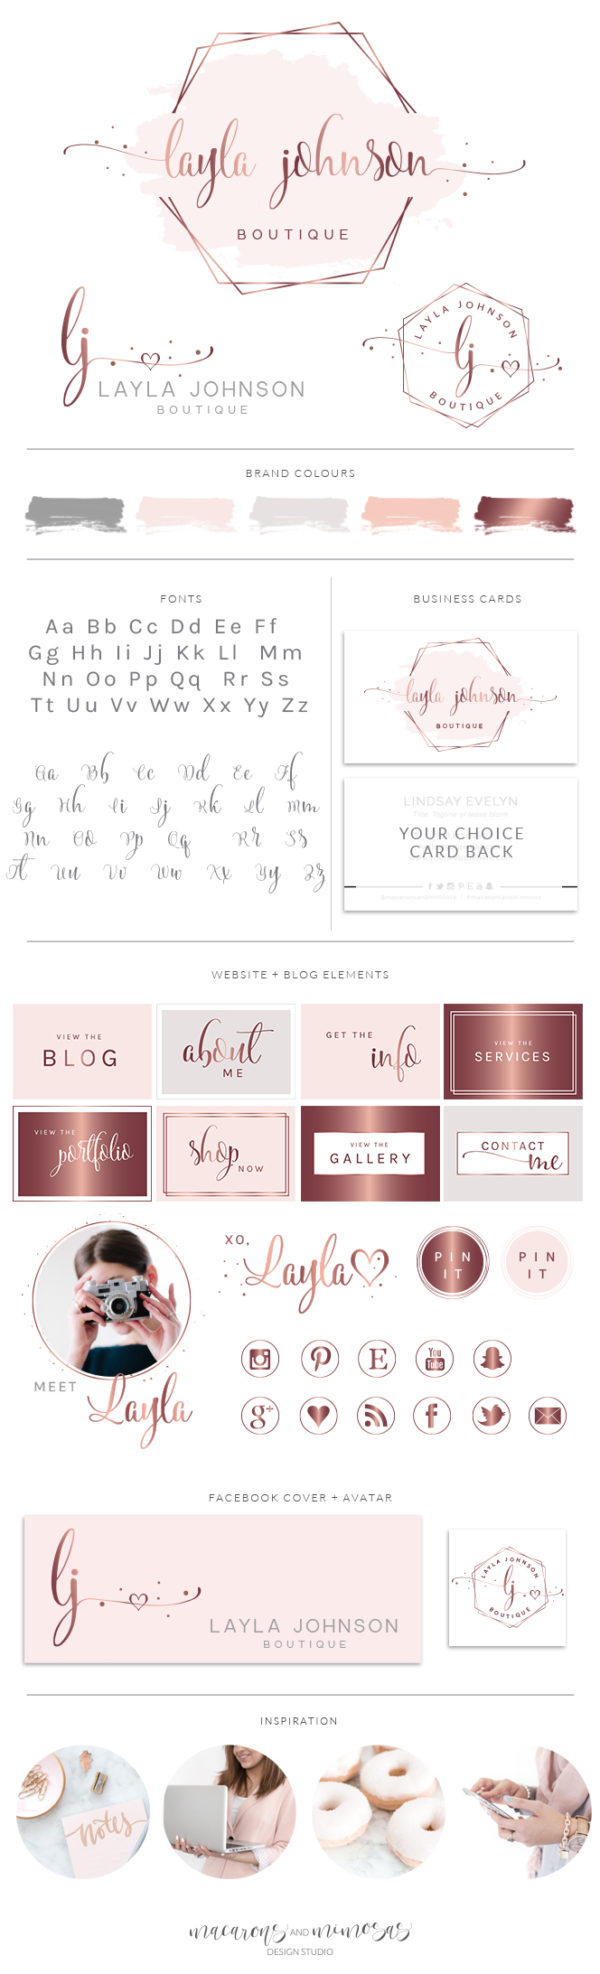 Heart Logo Design, Watercolor Logo Design, Rose gold Branding kit, Photography logo, Watermark, Premade Branding Package, Custom Logo Design, Branding kit